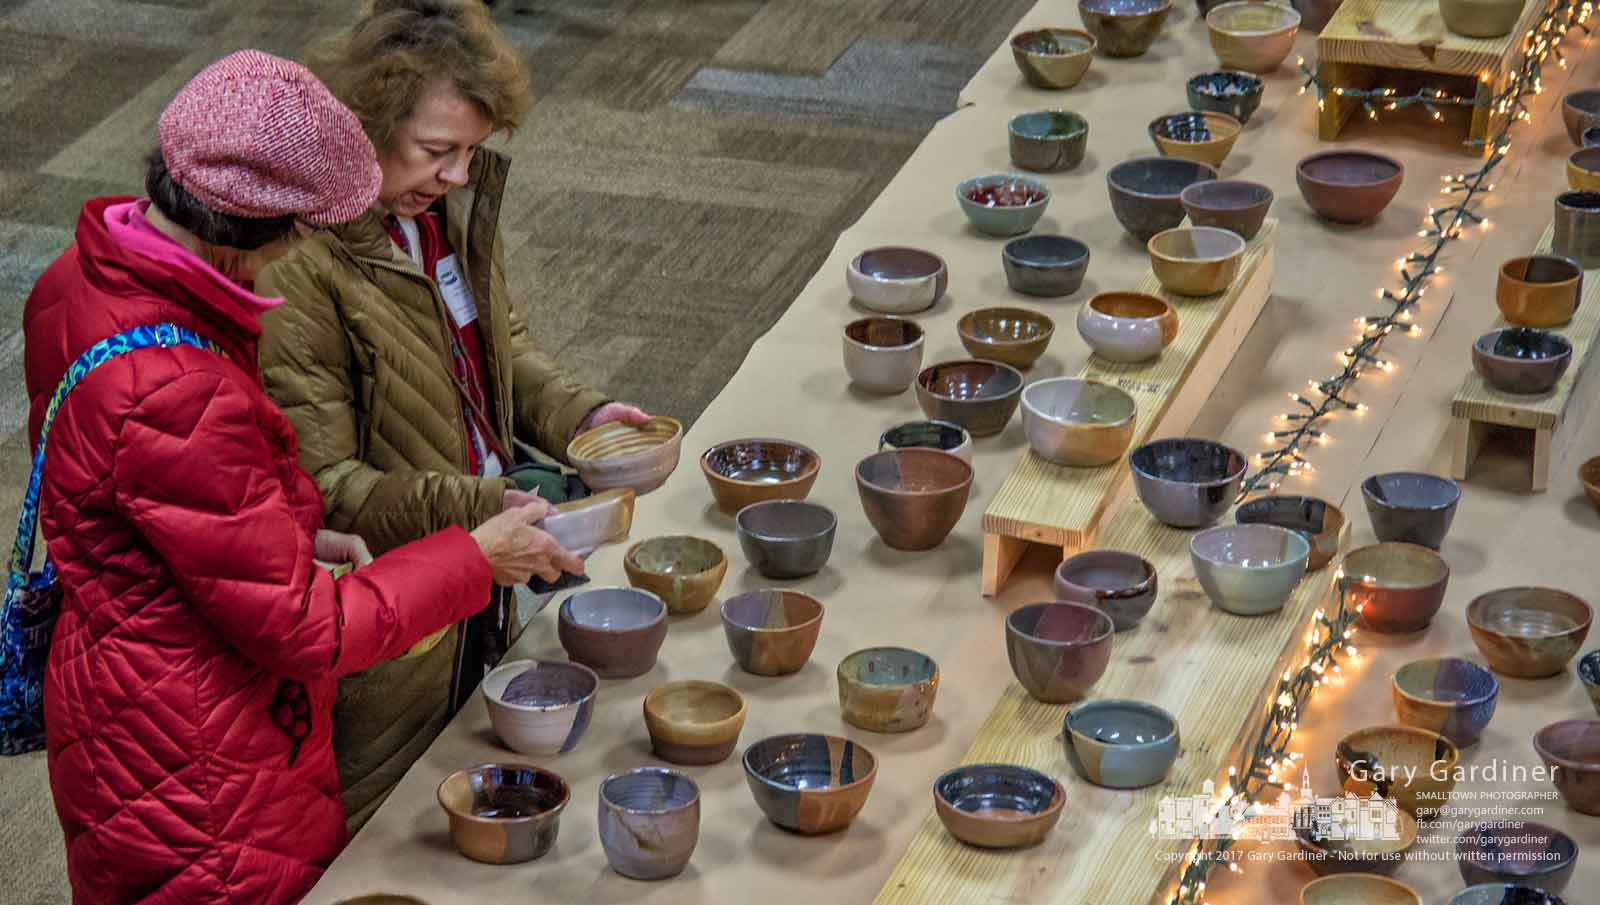 Two women sort through a table of soup bowls fashioned by Columbus Academy students for the Soup for Shelter fundraiser at Otterbein University for Westerville Habitat Partnership. My Final Photo for Dec. 8, 2017.